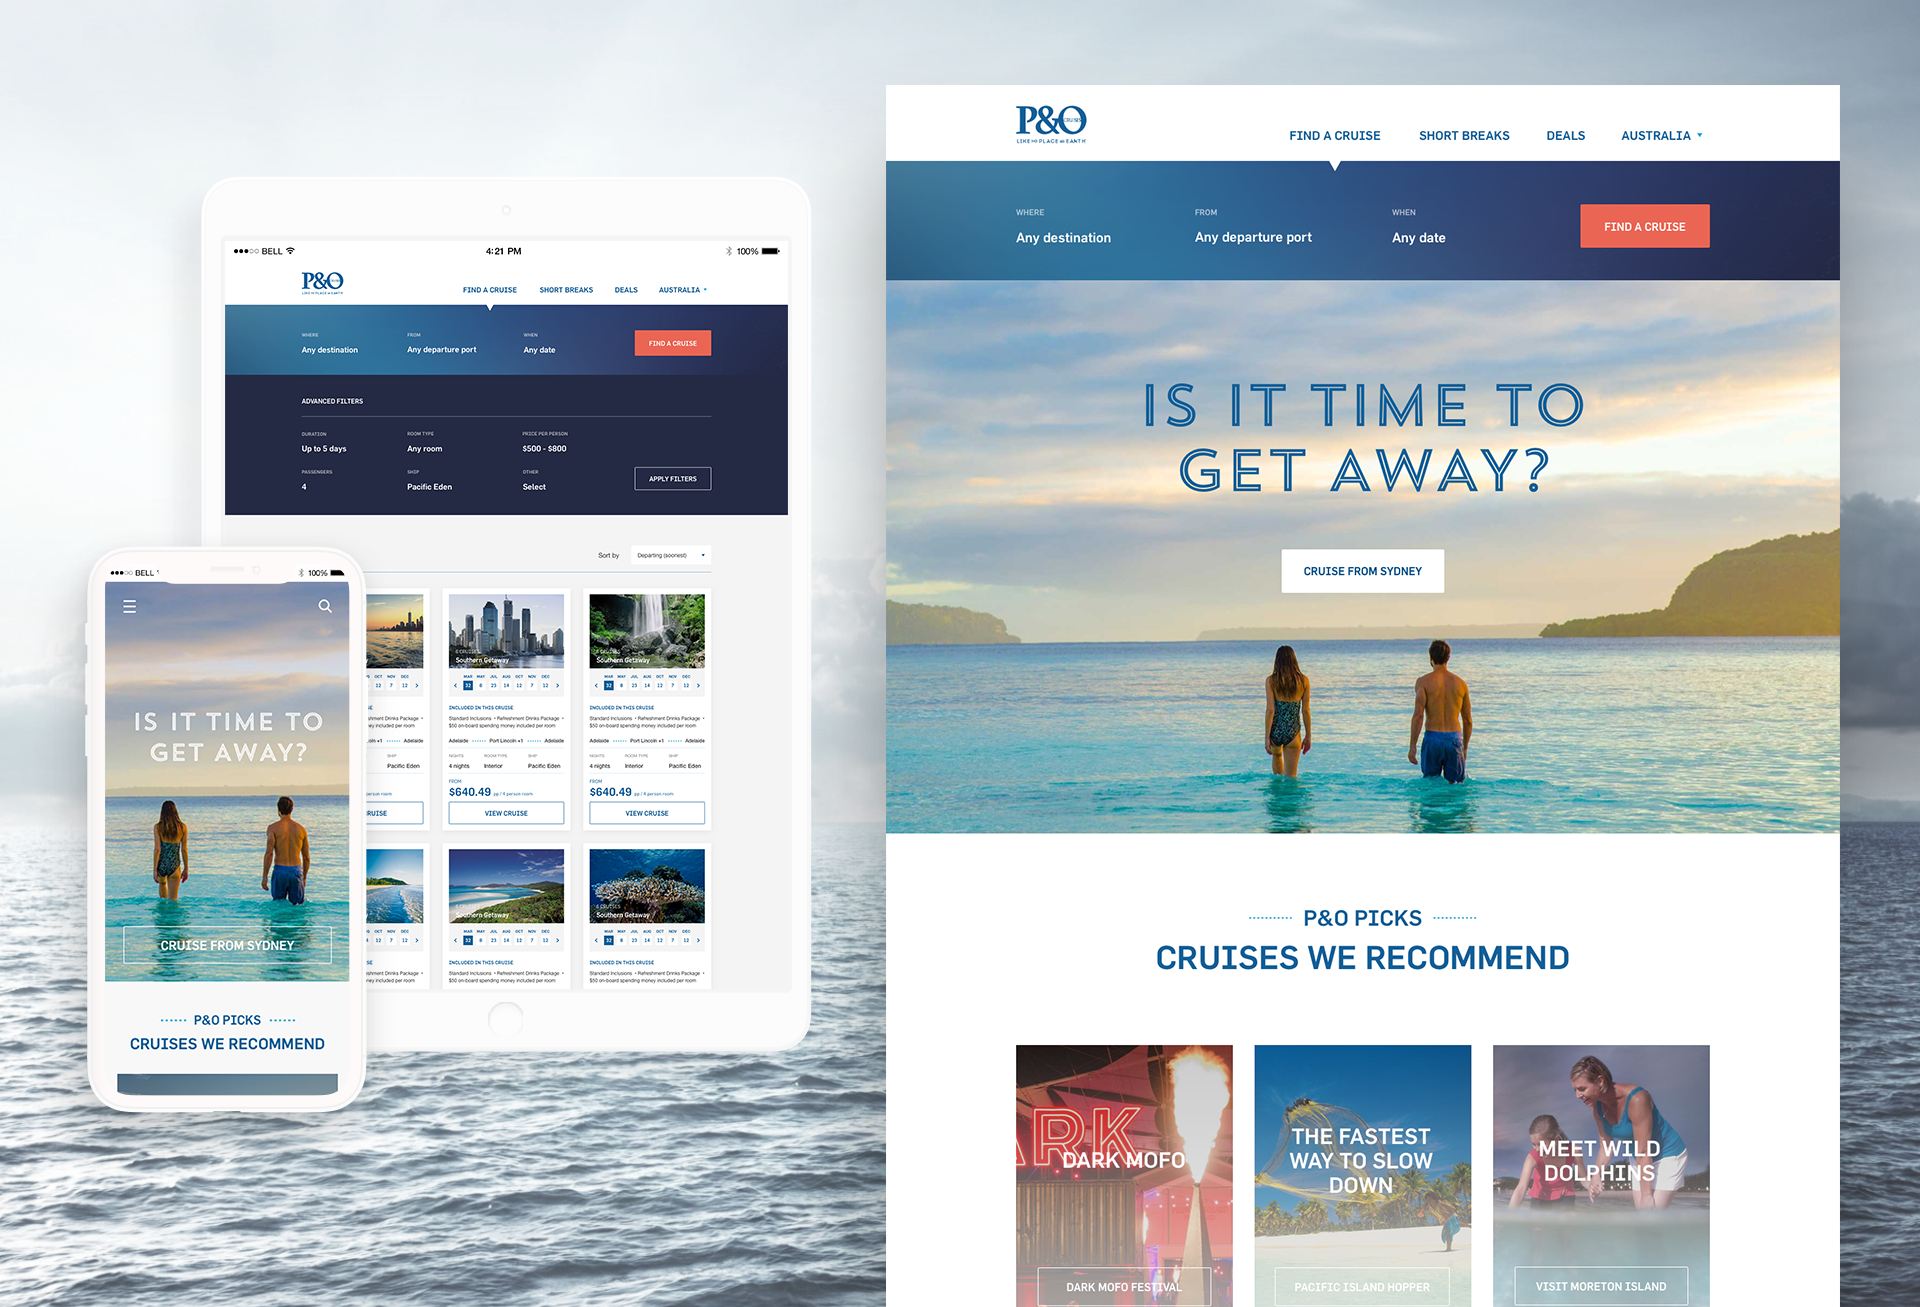 P&O Cruises website